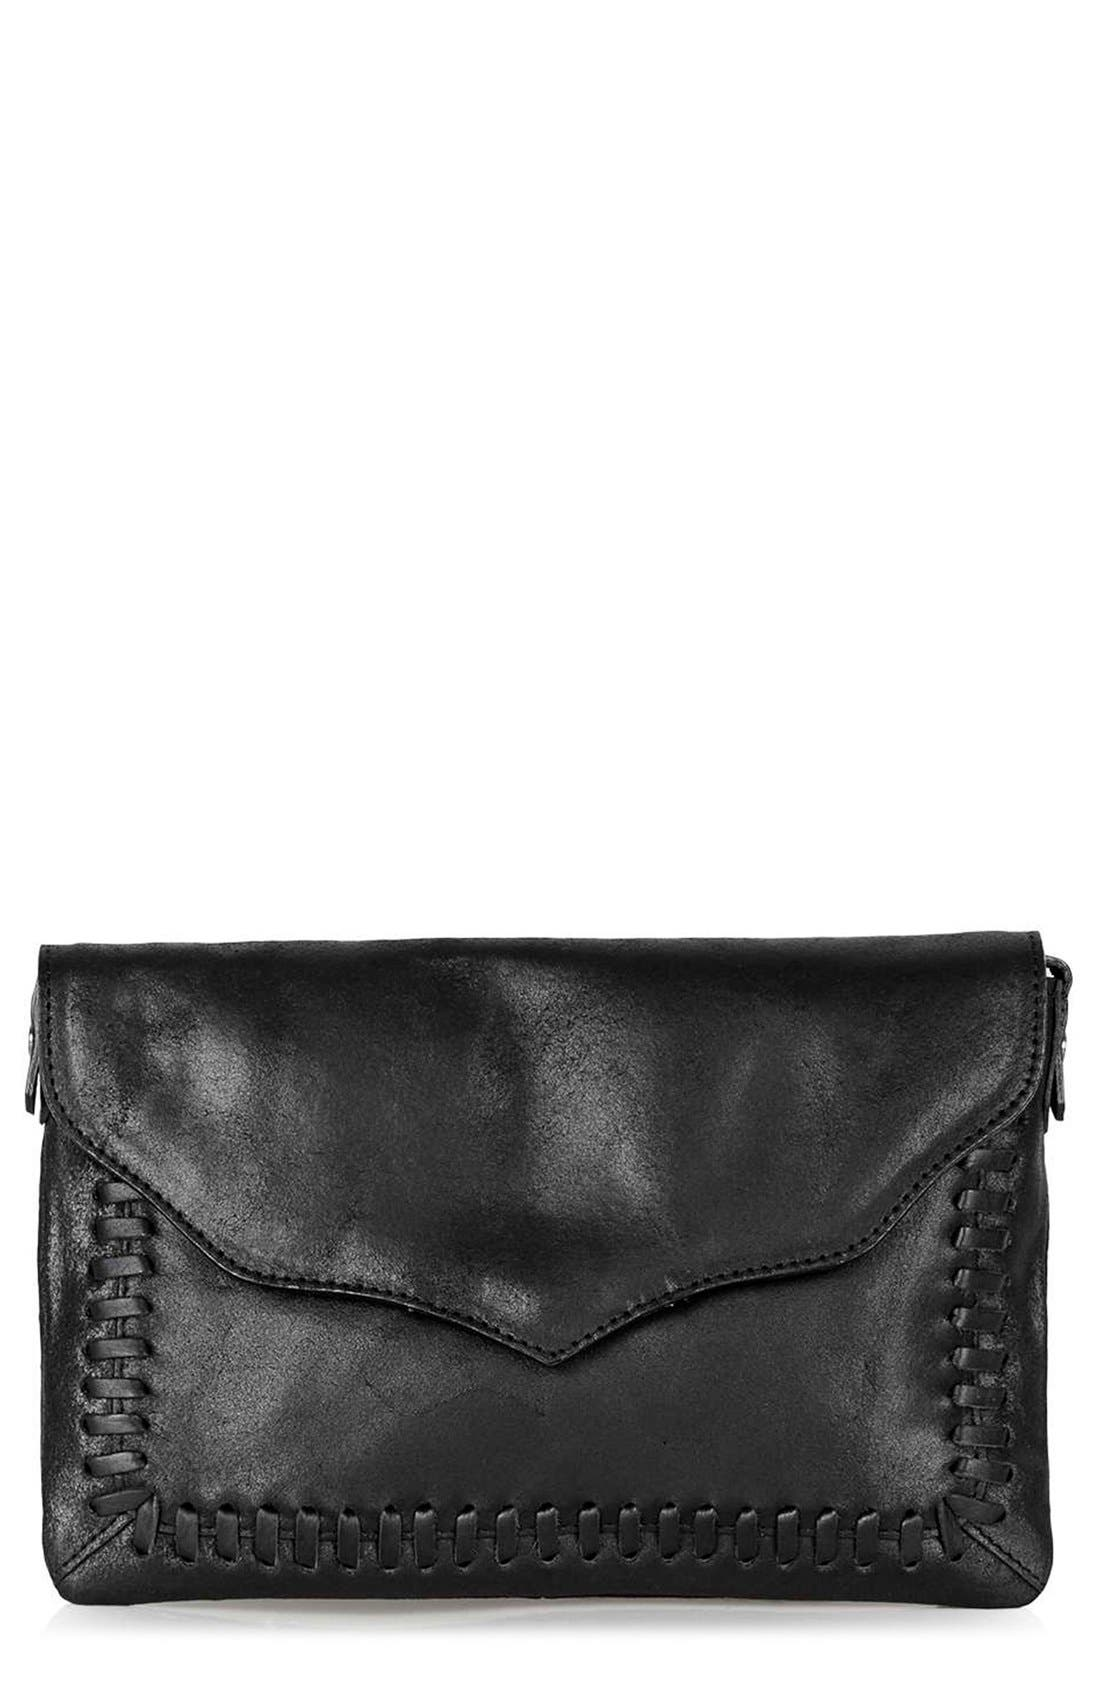 Alternate Image 1 Selected - Topshop Crackle Whipstitch Leather Crossbody Bag